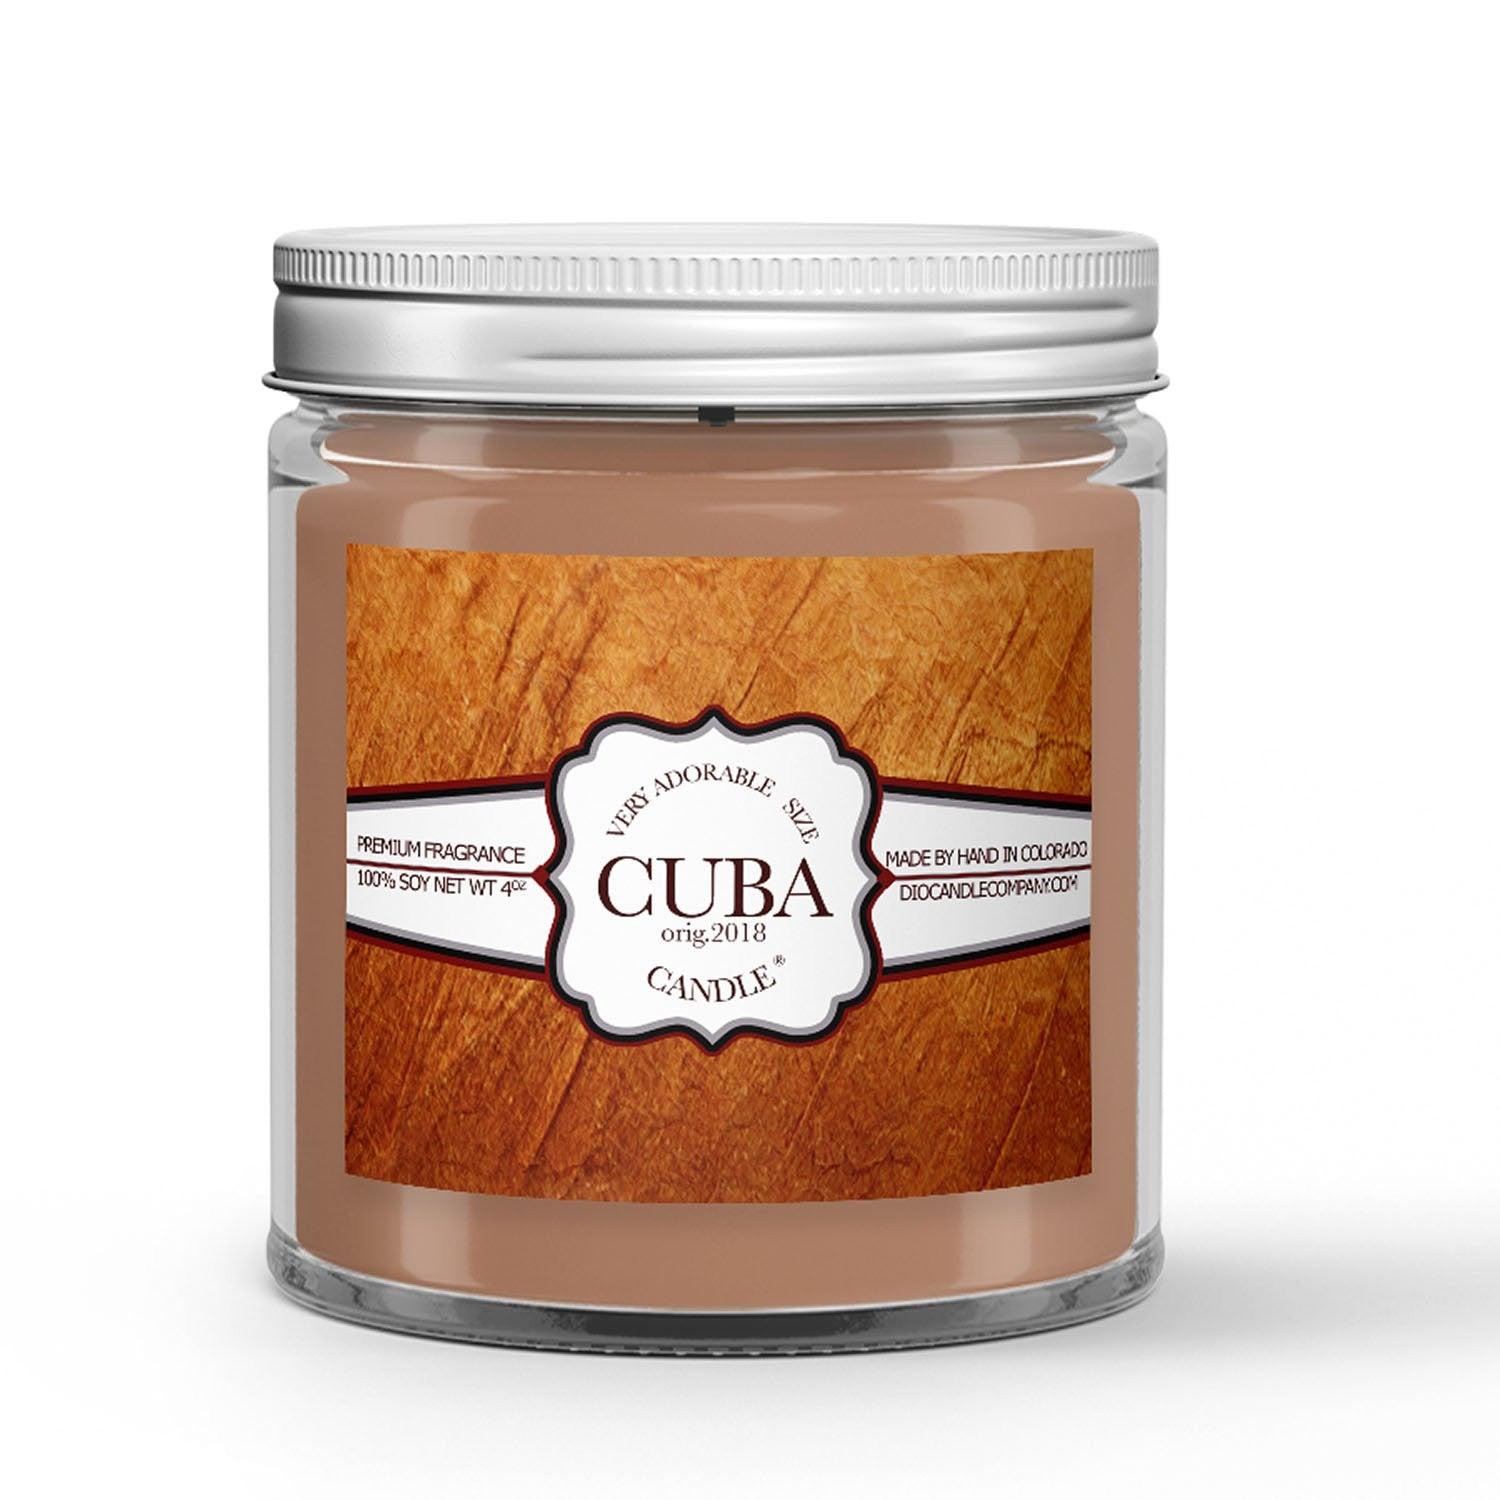 Cuban Tobacco Candle - Cuban Tobacco - Humidor - Cherry - Clove - 4oz Very Adorable Size Candle® - Dio Candle Company